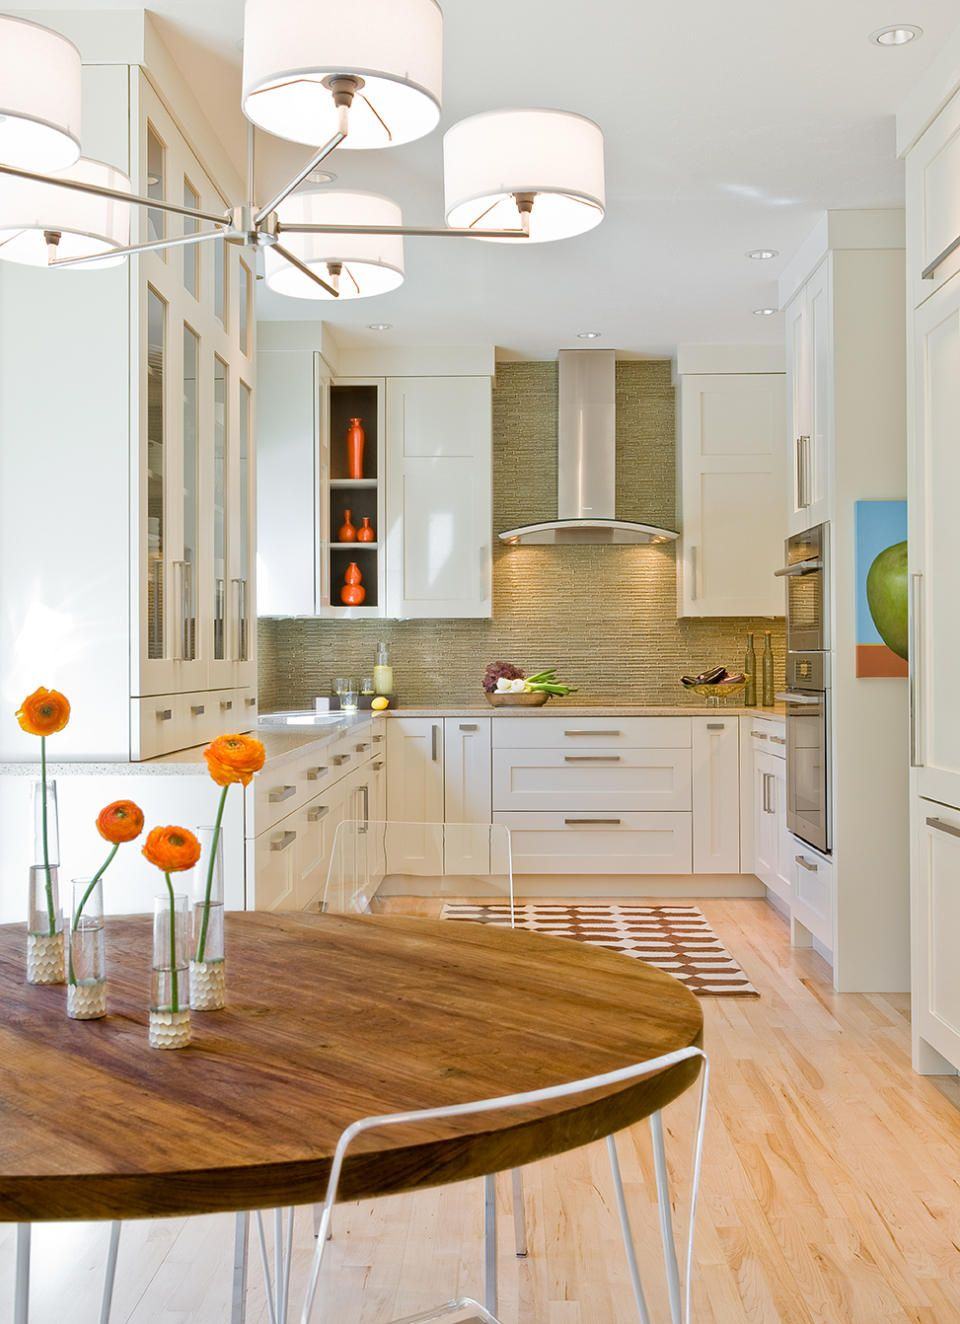 Kitchen Design Company Amusing Modern Kitchen Design Photovenegas And Companya Boston Review